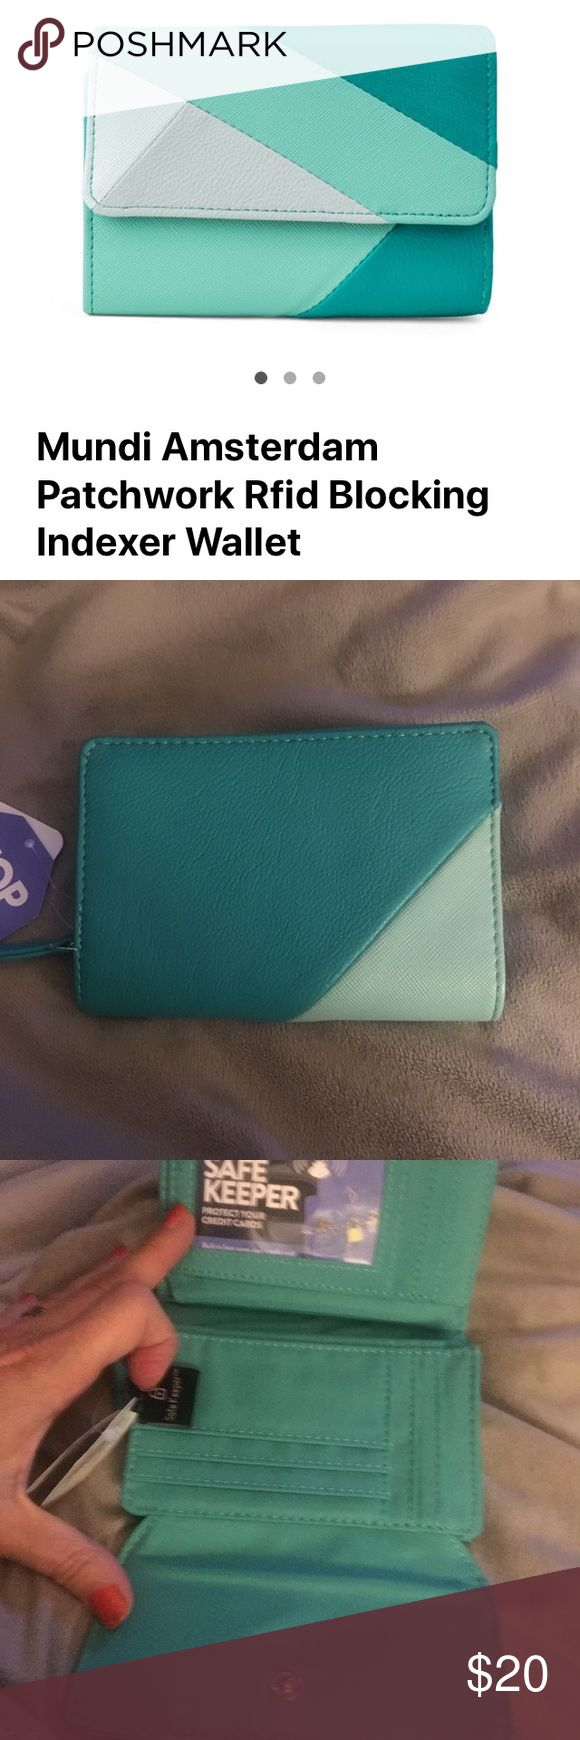 Mundi Identity thief safe keepers wallet This Beautiful aqua patchwork wallet is brand new. Original price $35. See description above. Mundi Bags Clutches & Wristlets